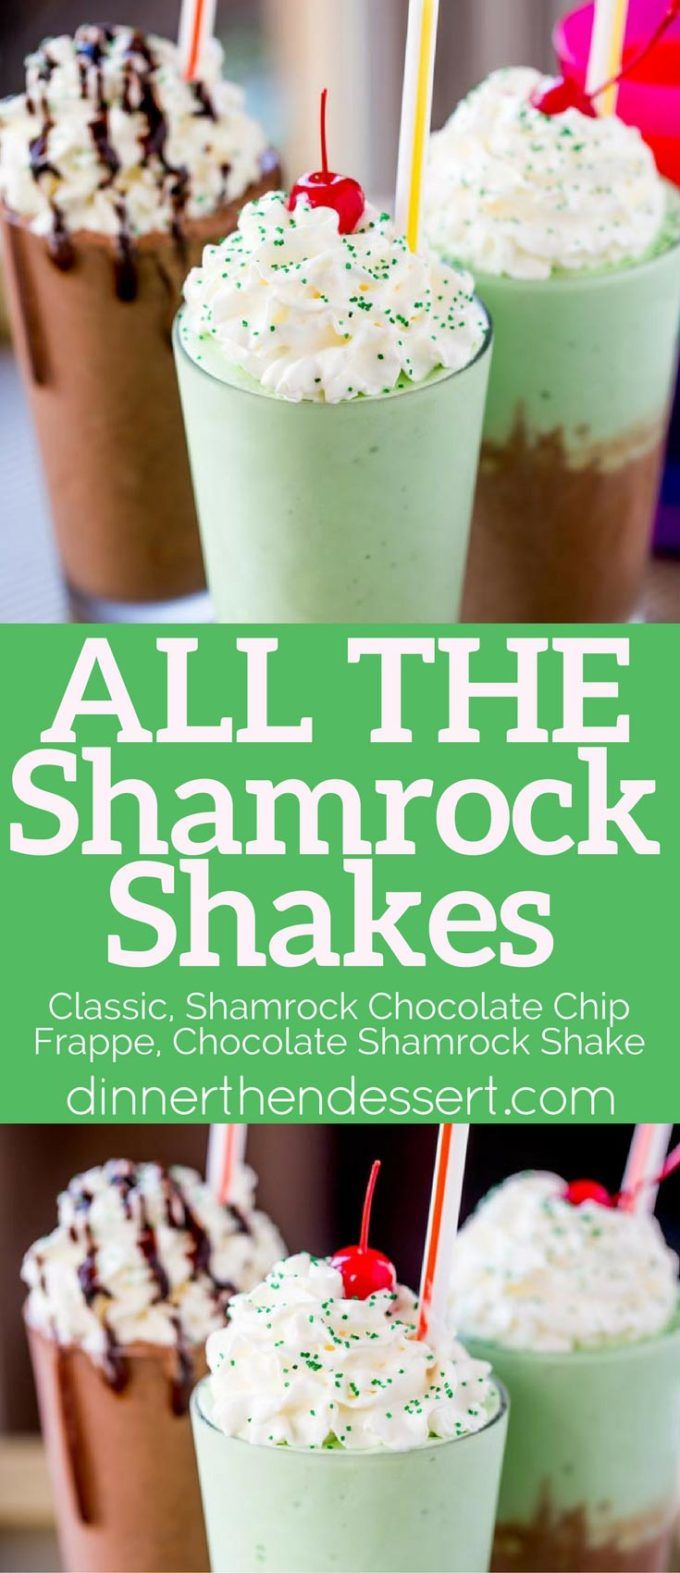 All The Shamrock Shakes from McDonald's made in all three minty ways they've released this year! Classic, Chocolate Shamrock Shake and Shamrock Chocolate Chip Frappe.